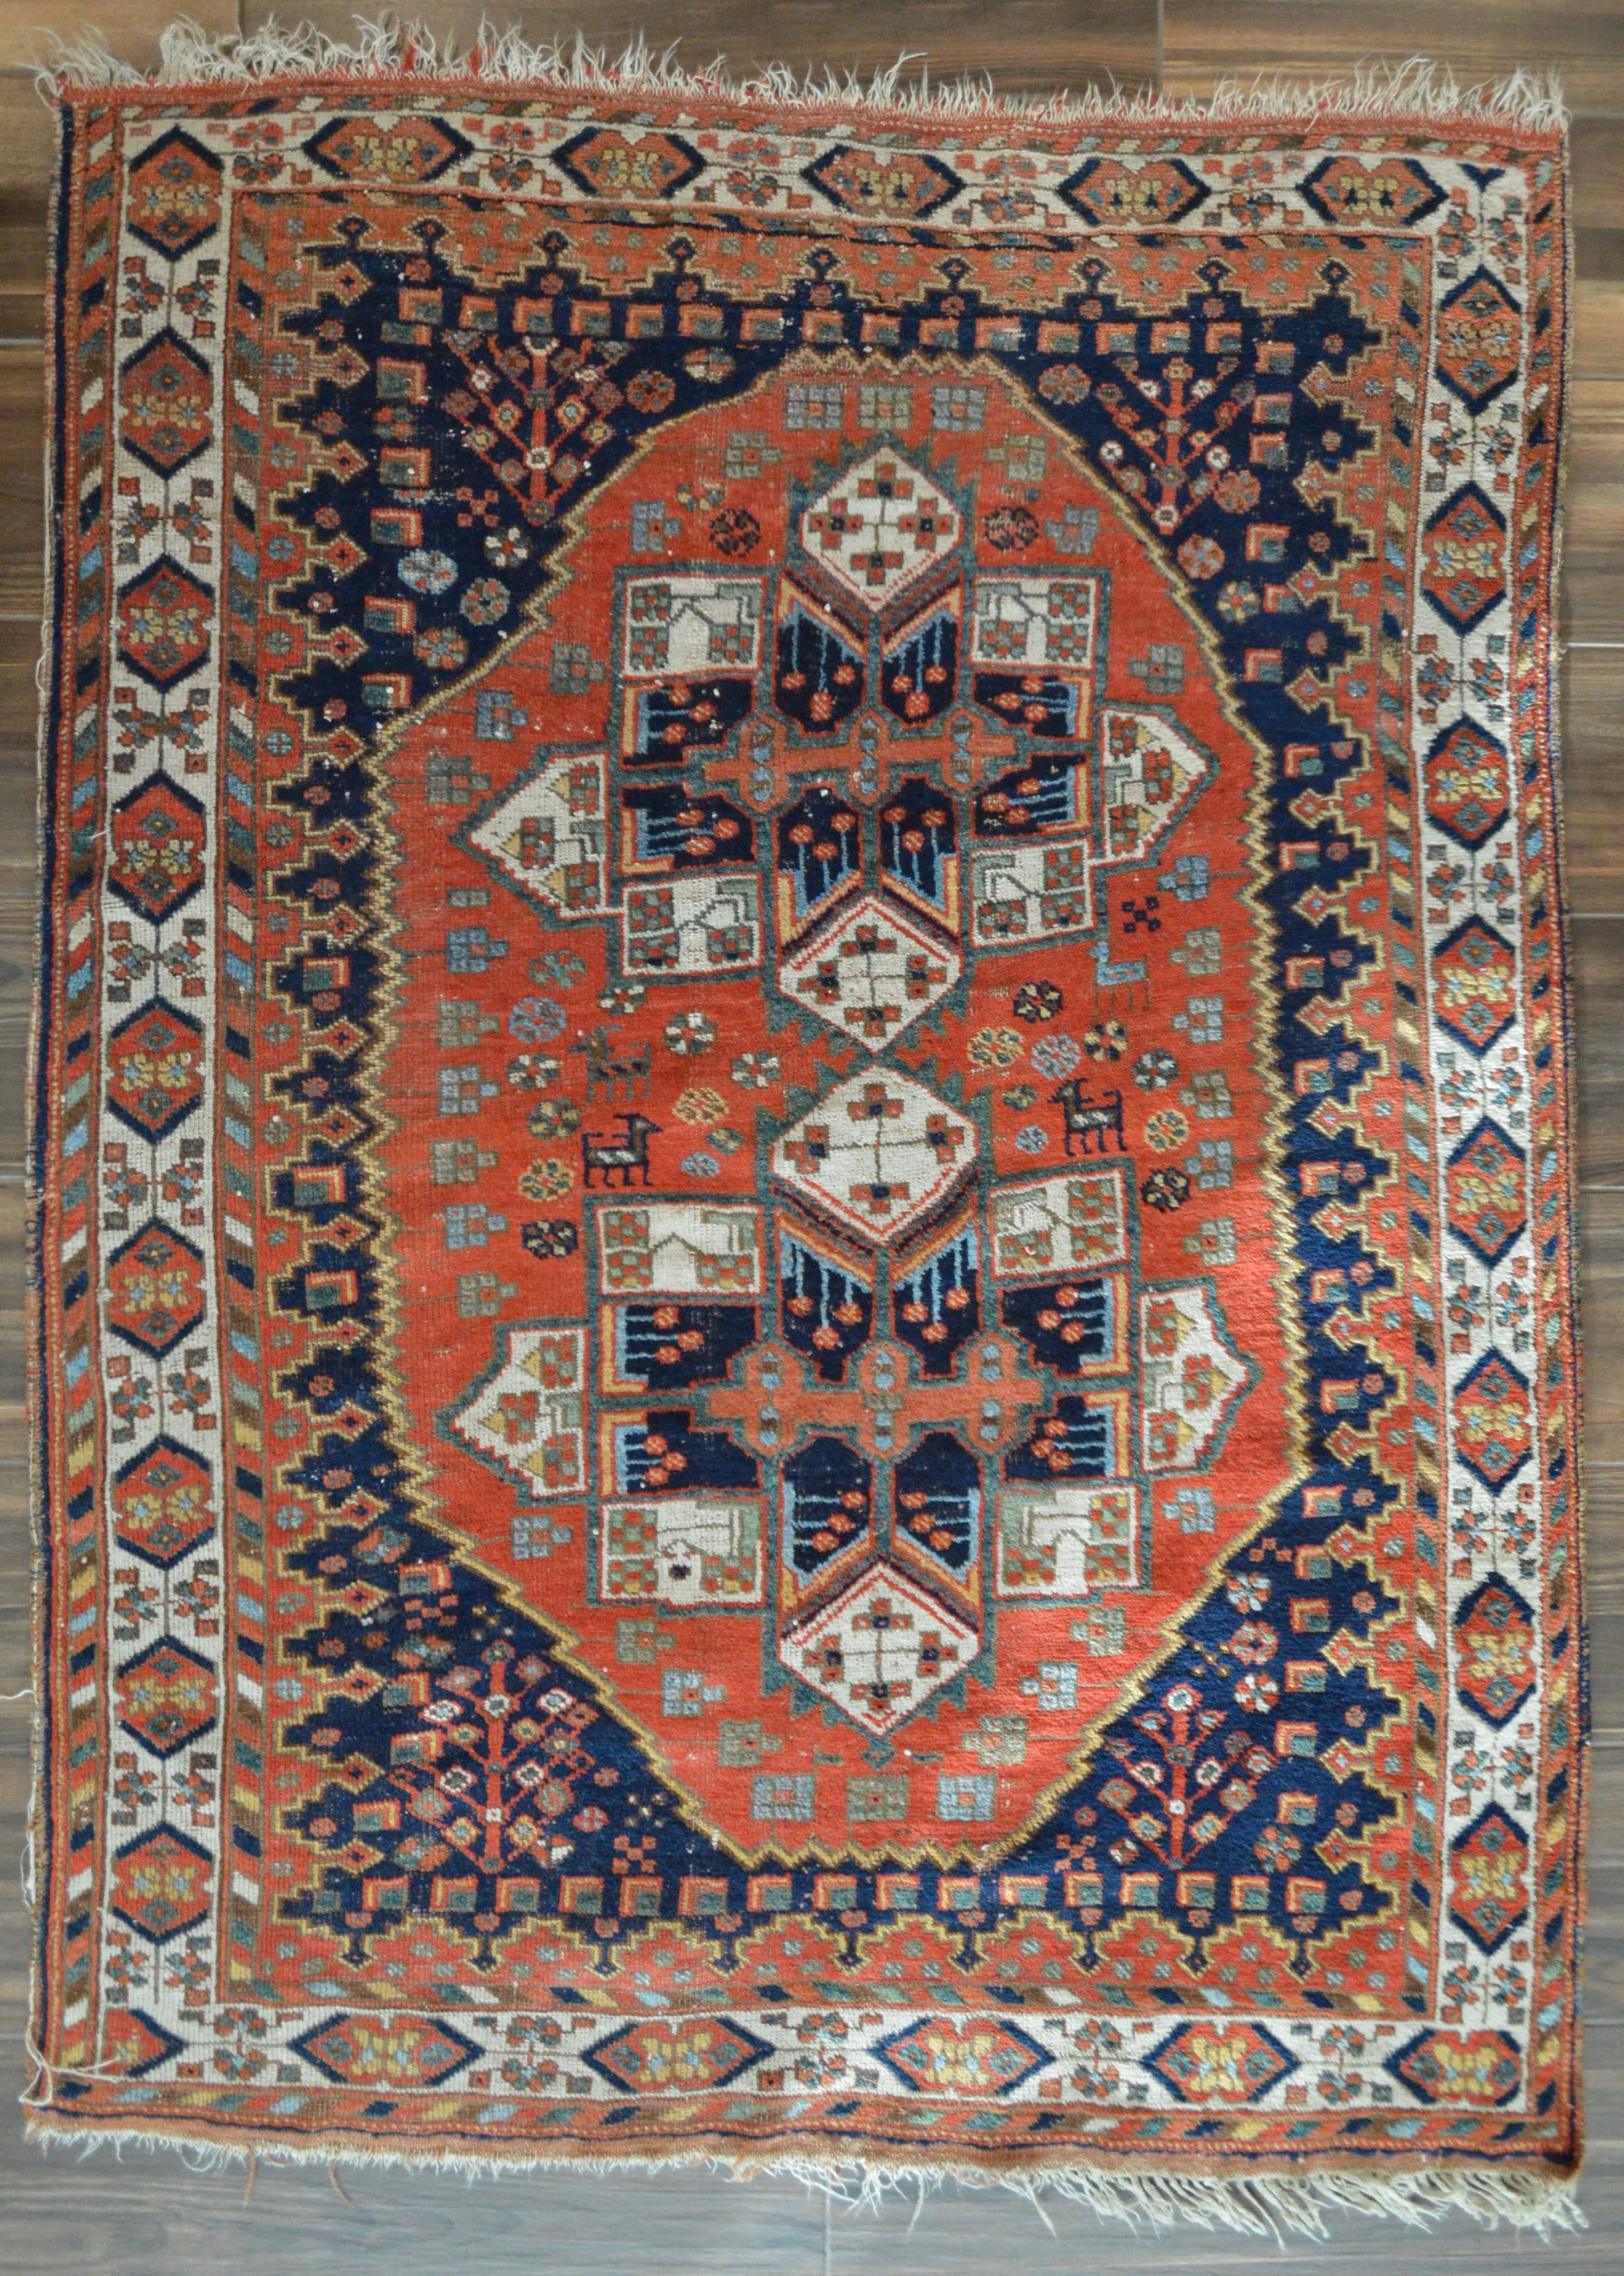 web from gallery afghan karaja tribal to rug is my design have at a karadja pages antique afghanistan see on site an look undercoverruglover additional this rugs taken